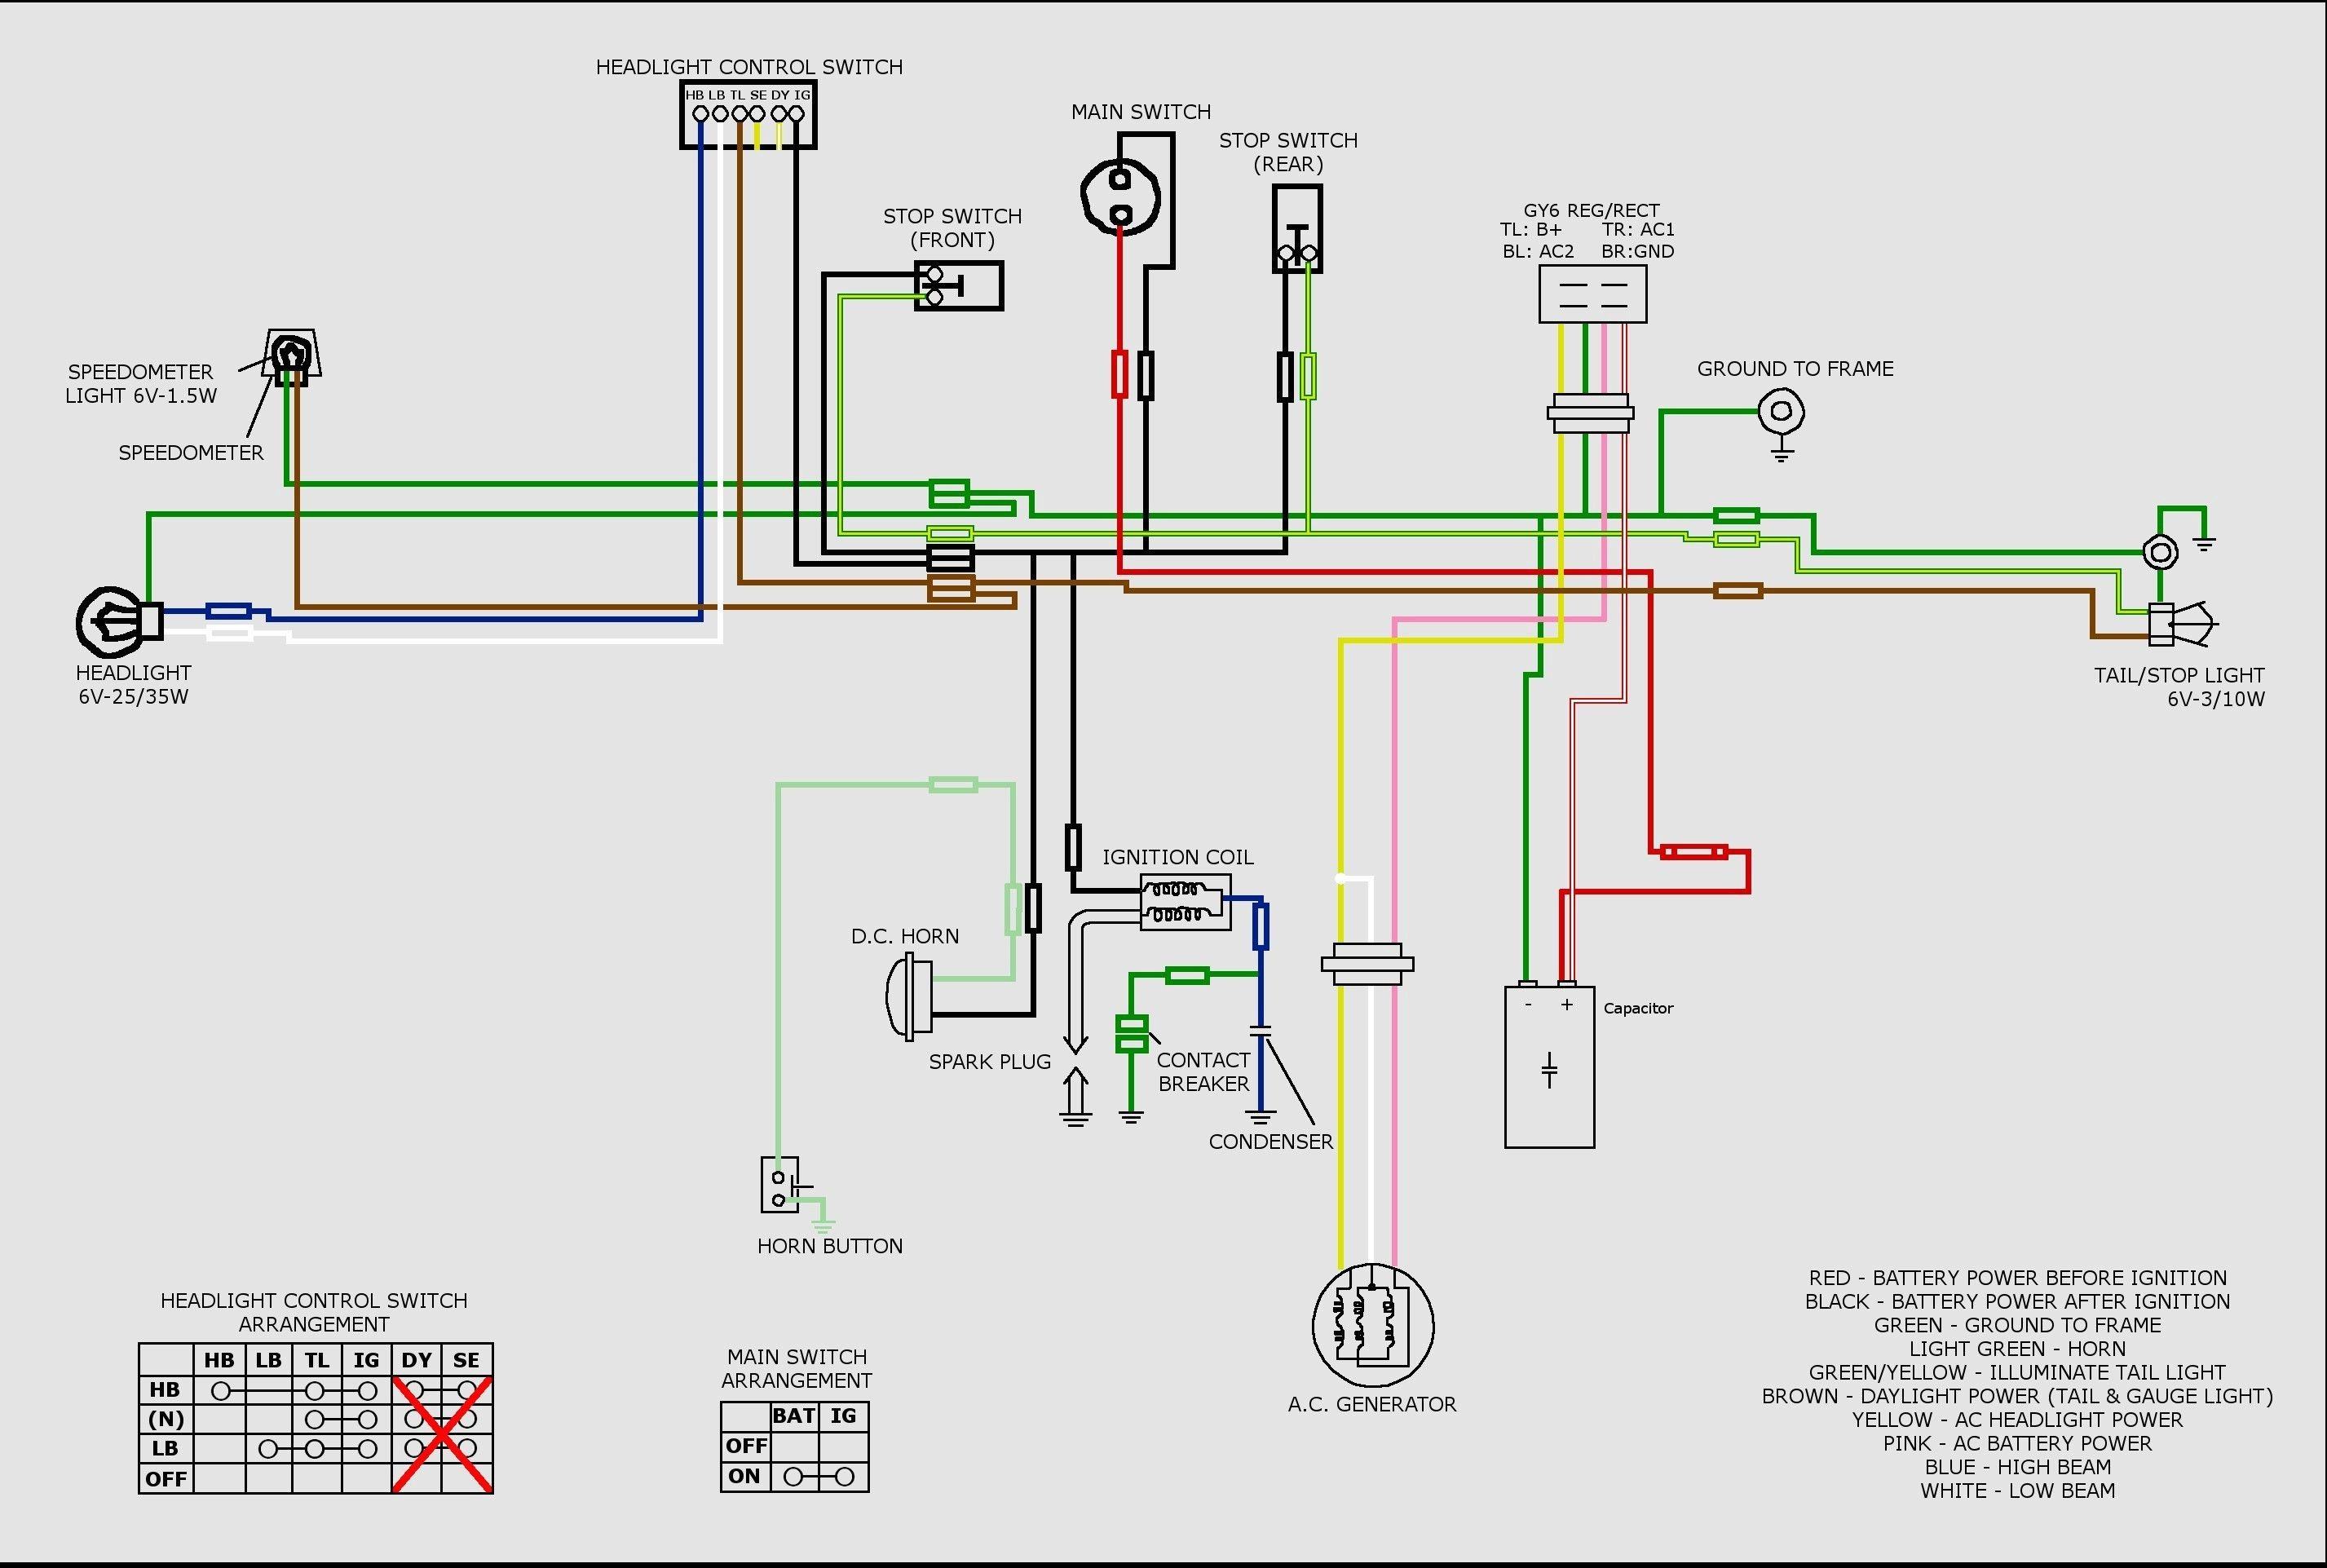 scooter electric diagram wiring diagram mega mix scooter wire diagram wiring diagram toolbox scooter circuit diagram